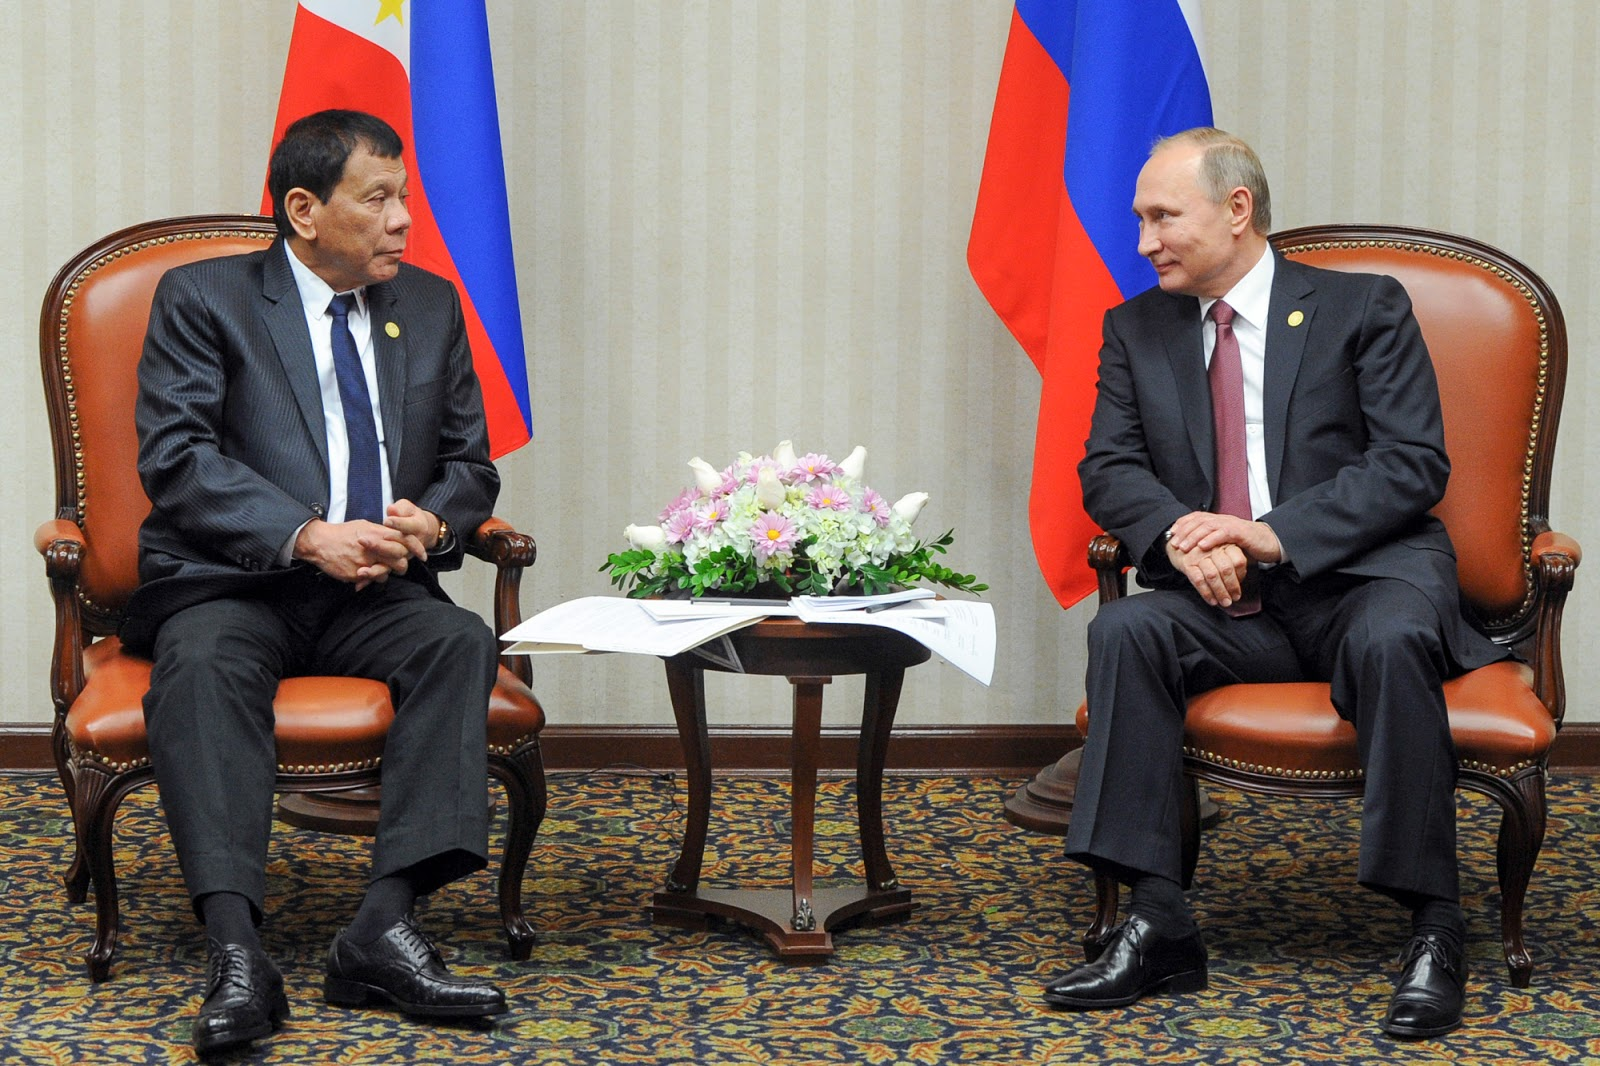 Philippine President Rodrigo Roa Duterte meeting with Russian President Putin